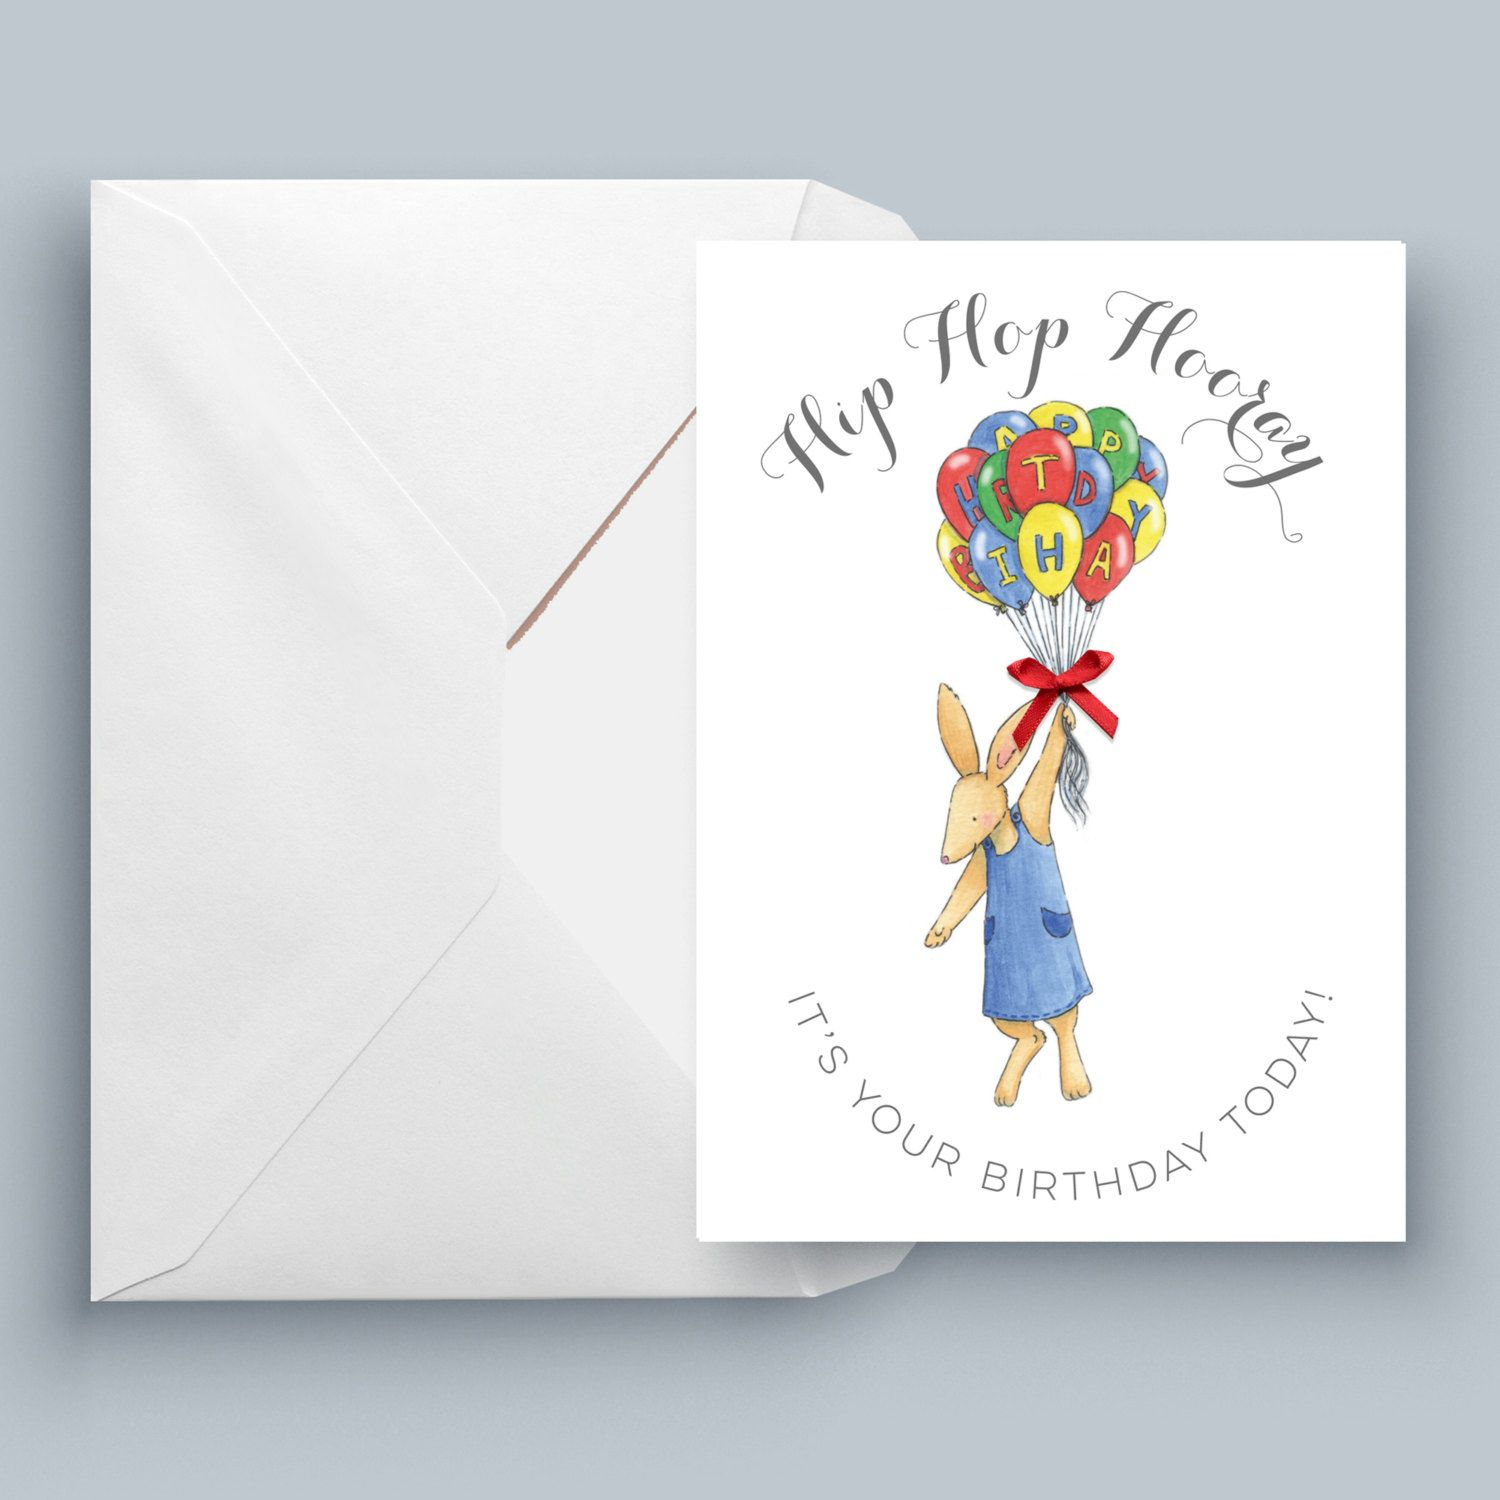 Bunny birthday balloons printed greeting card individual harry bunny birthday balloons printed greeting card individual harry harriet birthday card by harryandharrietcards kristyandbryce Image collections